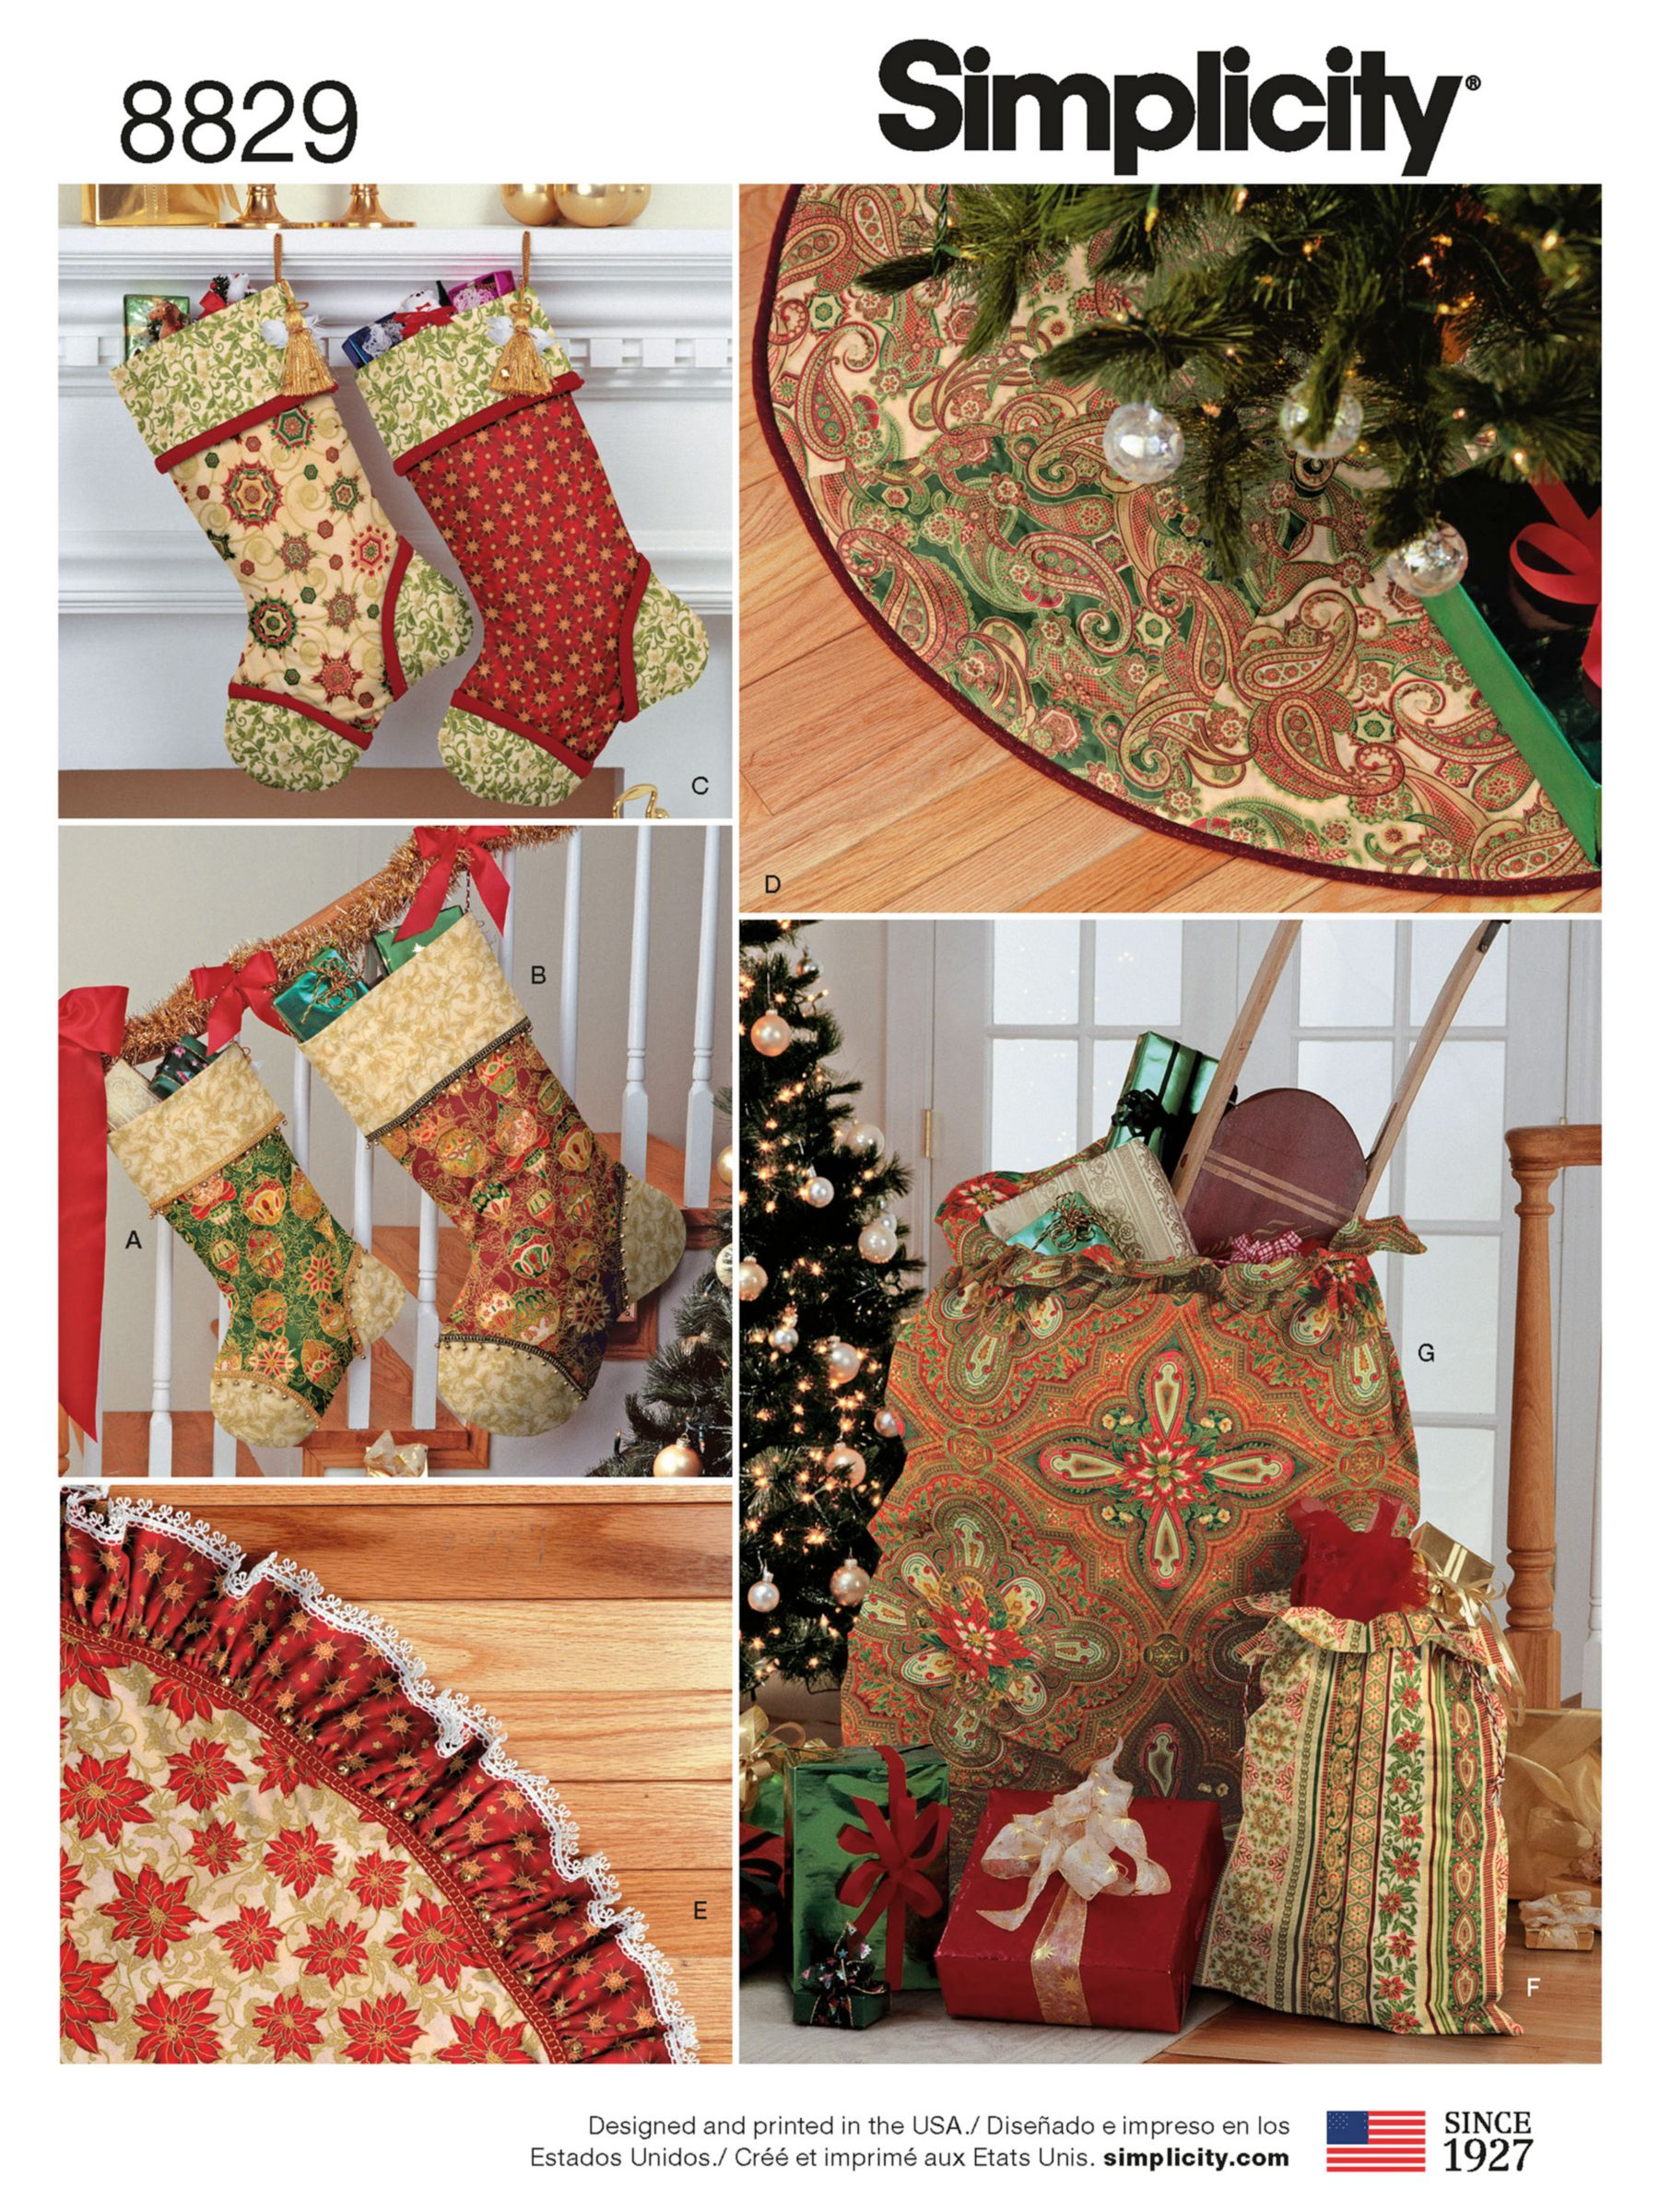 Simplicity Simplicity Christmas Decor Sewing Pattern, 8829